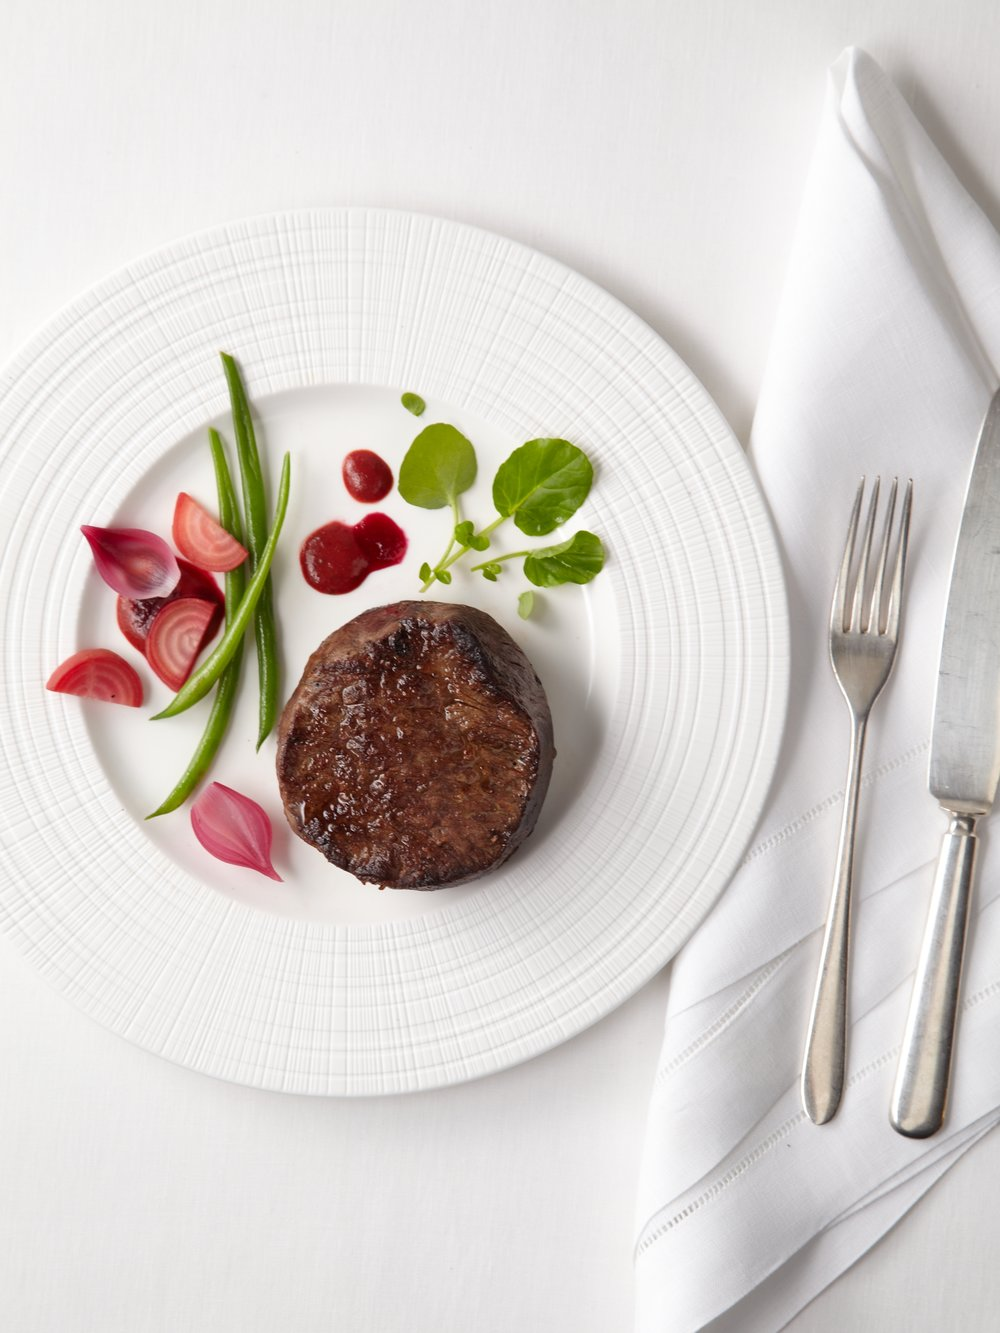 03_Gold_Label_Filet_of_Ribeye_NO_COLOR_77051490_A_001.jpg